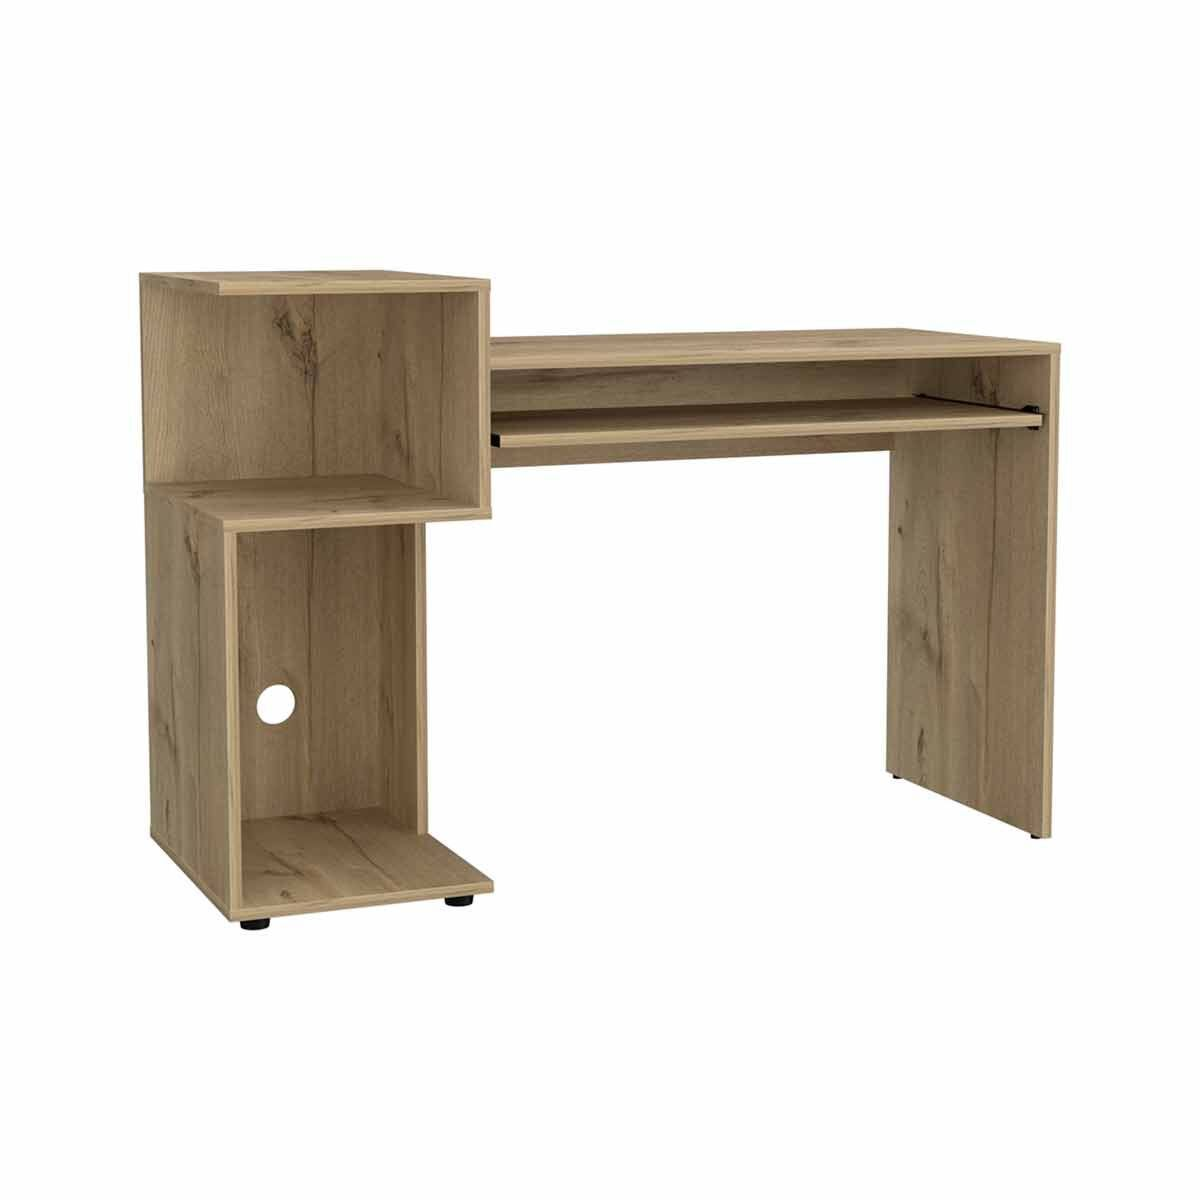 Brooklyn Desk with Low Shelving Unit